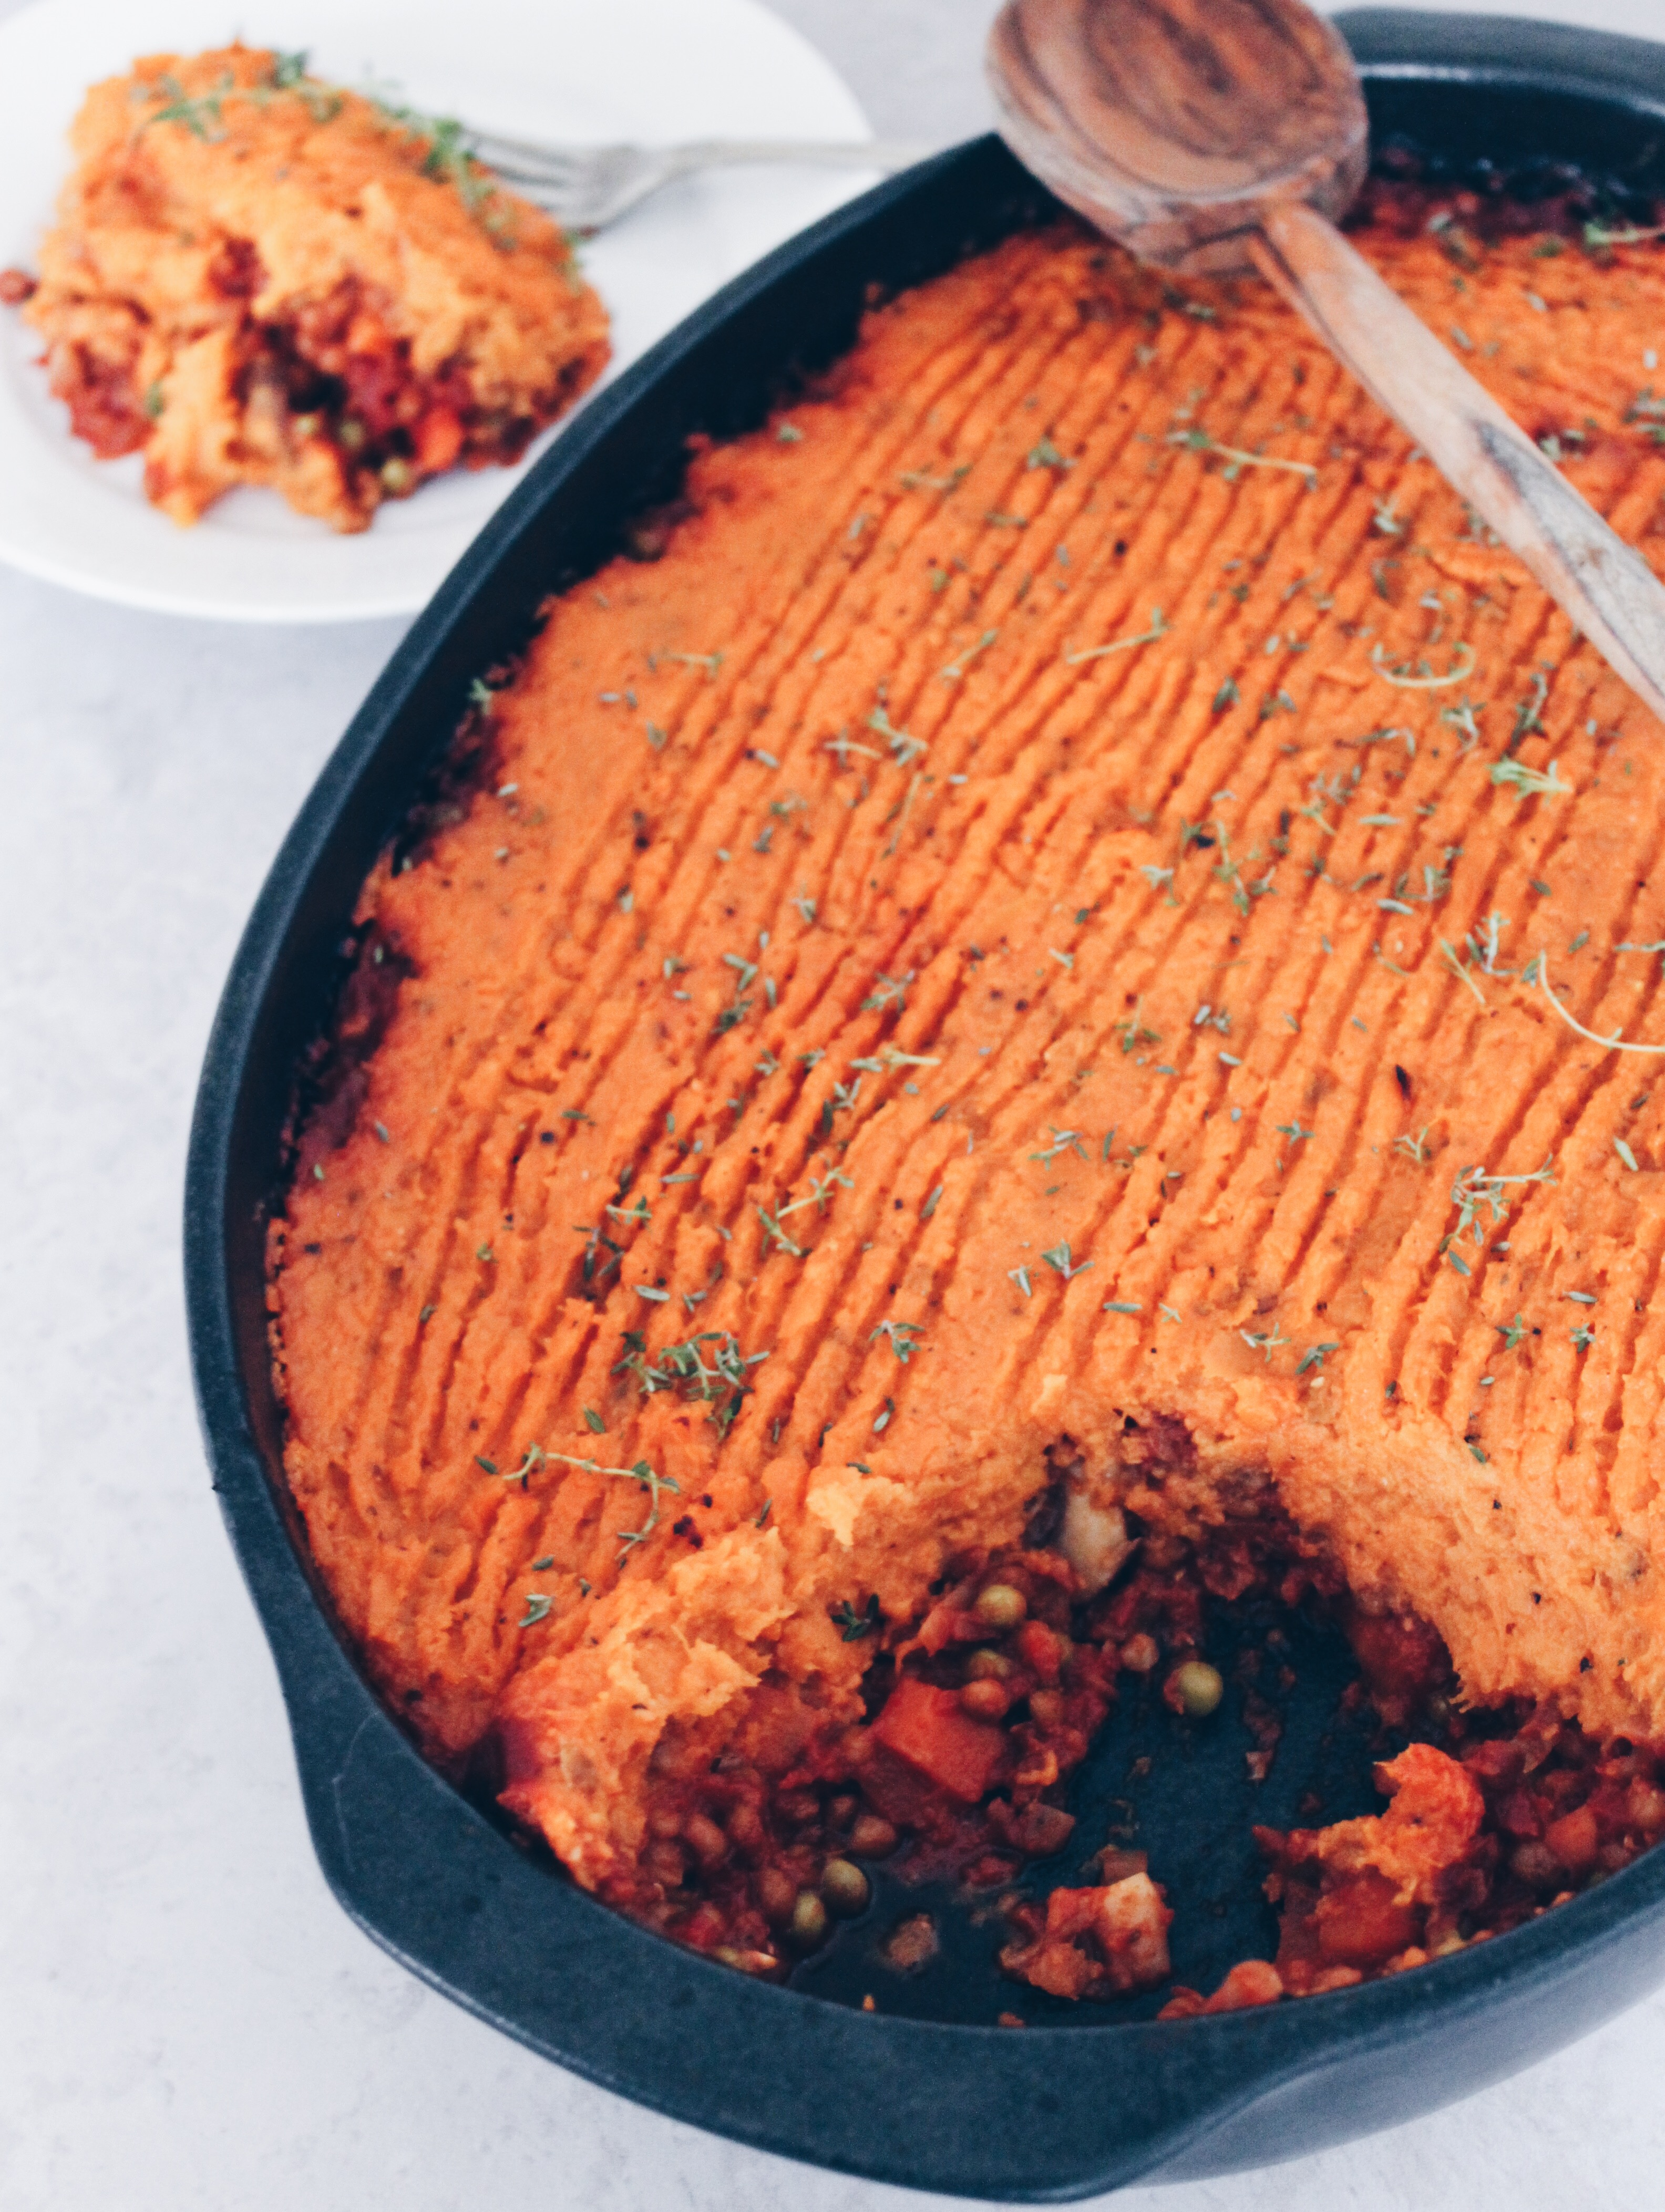 Vegansk shepherds' pie